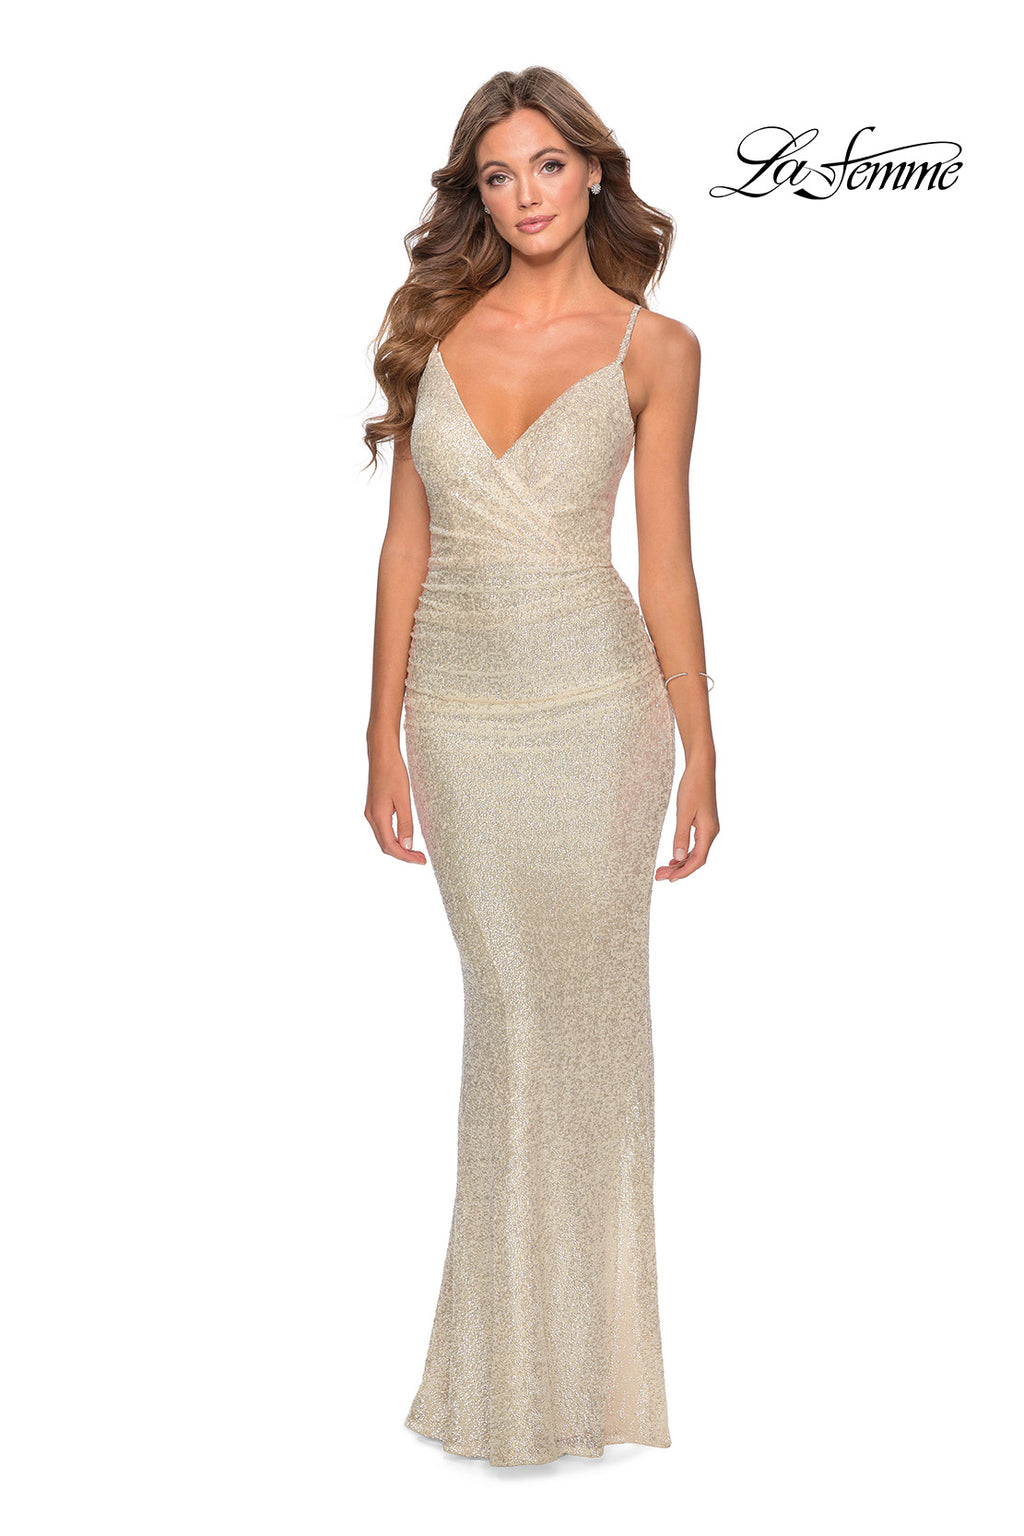 LAFEMME PROM DRESS #28335